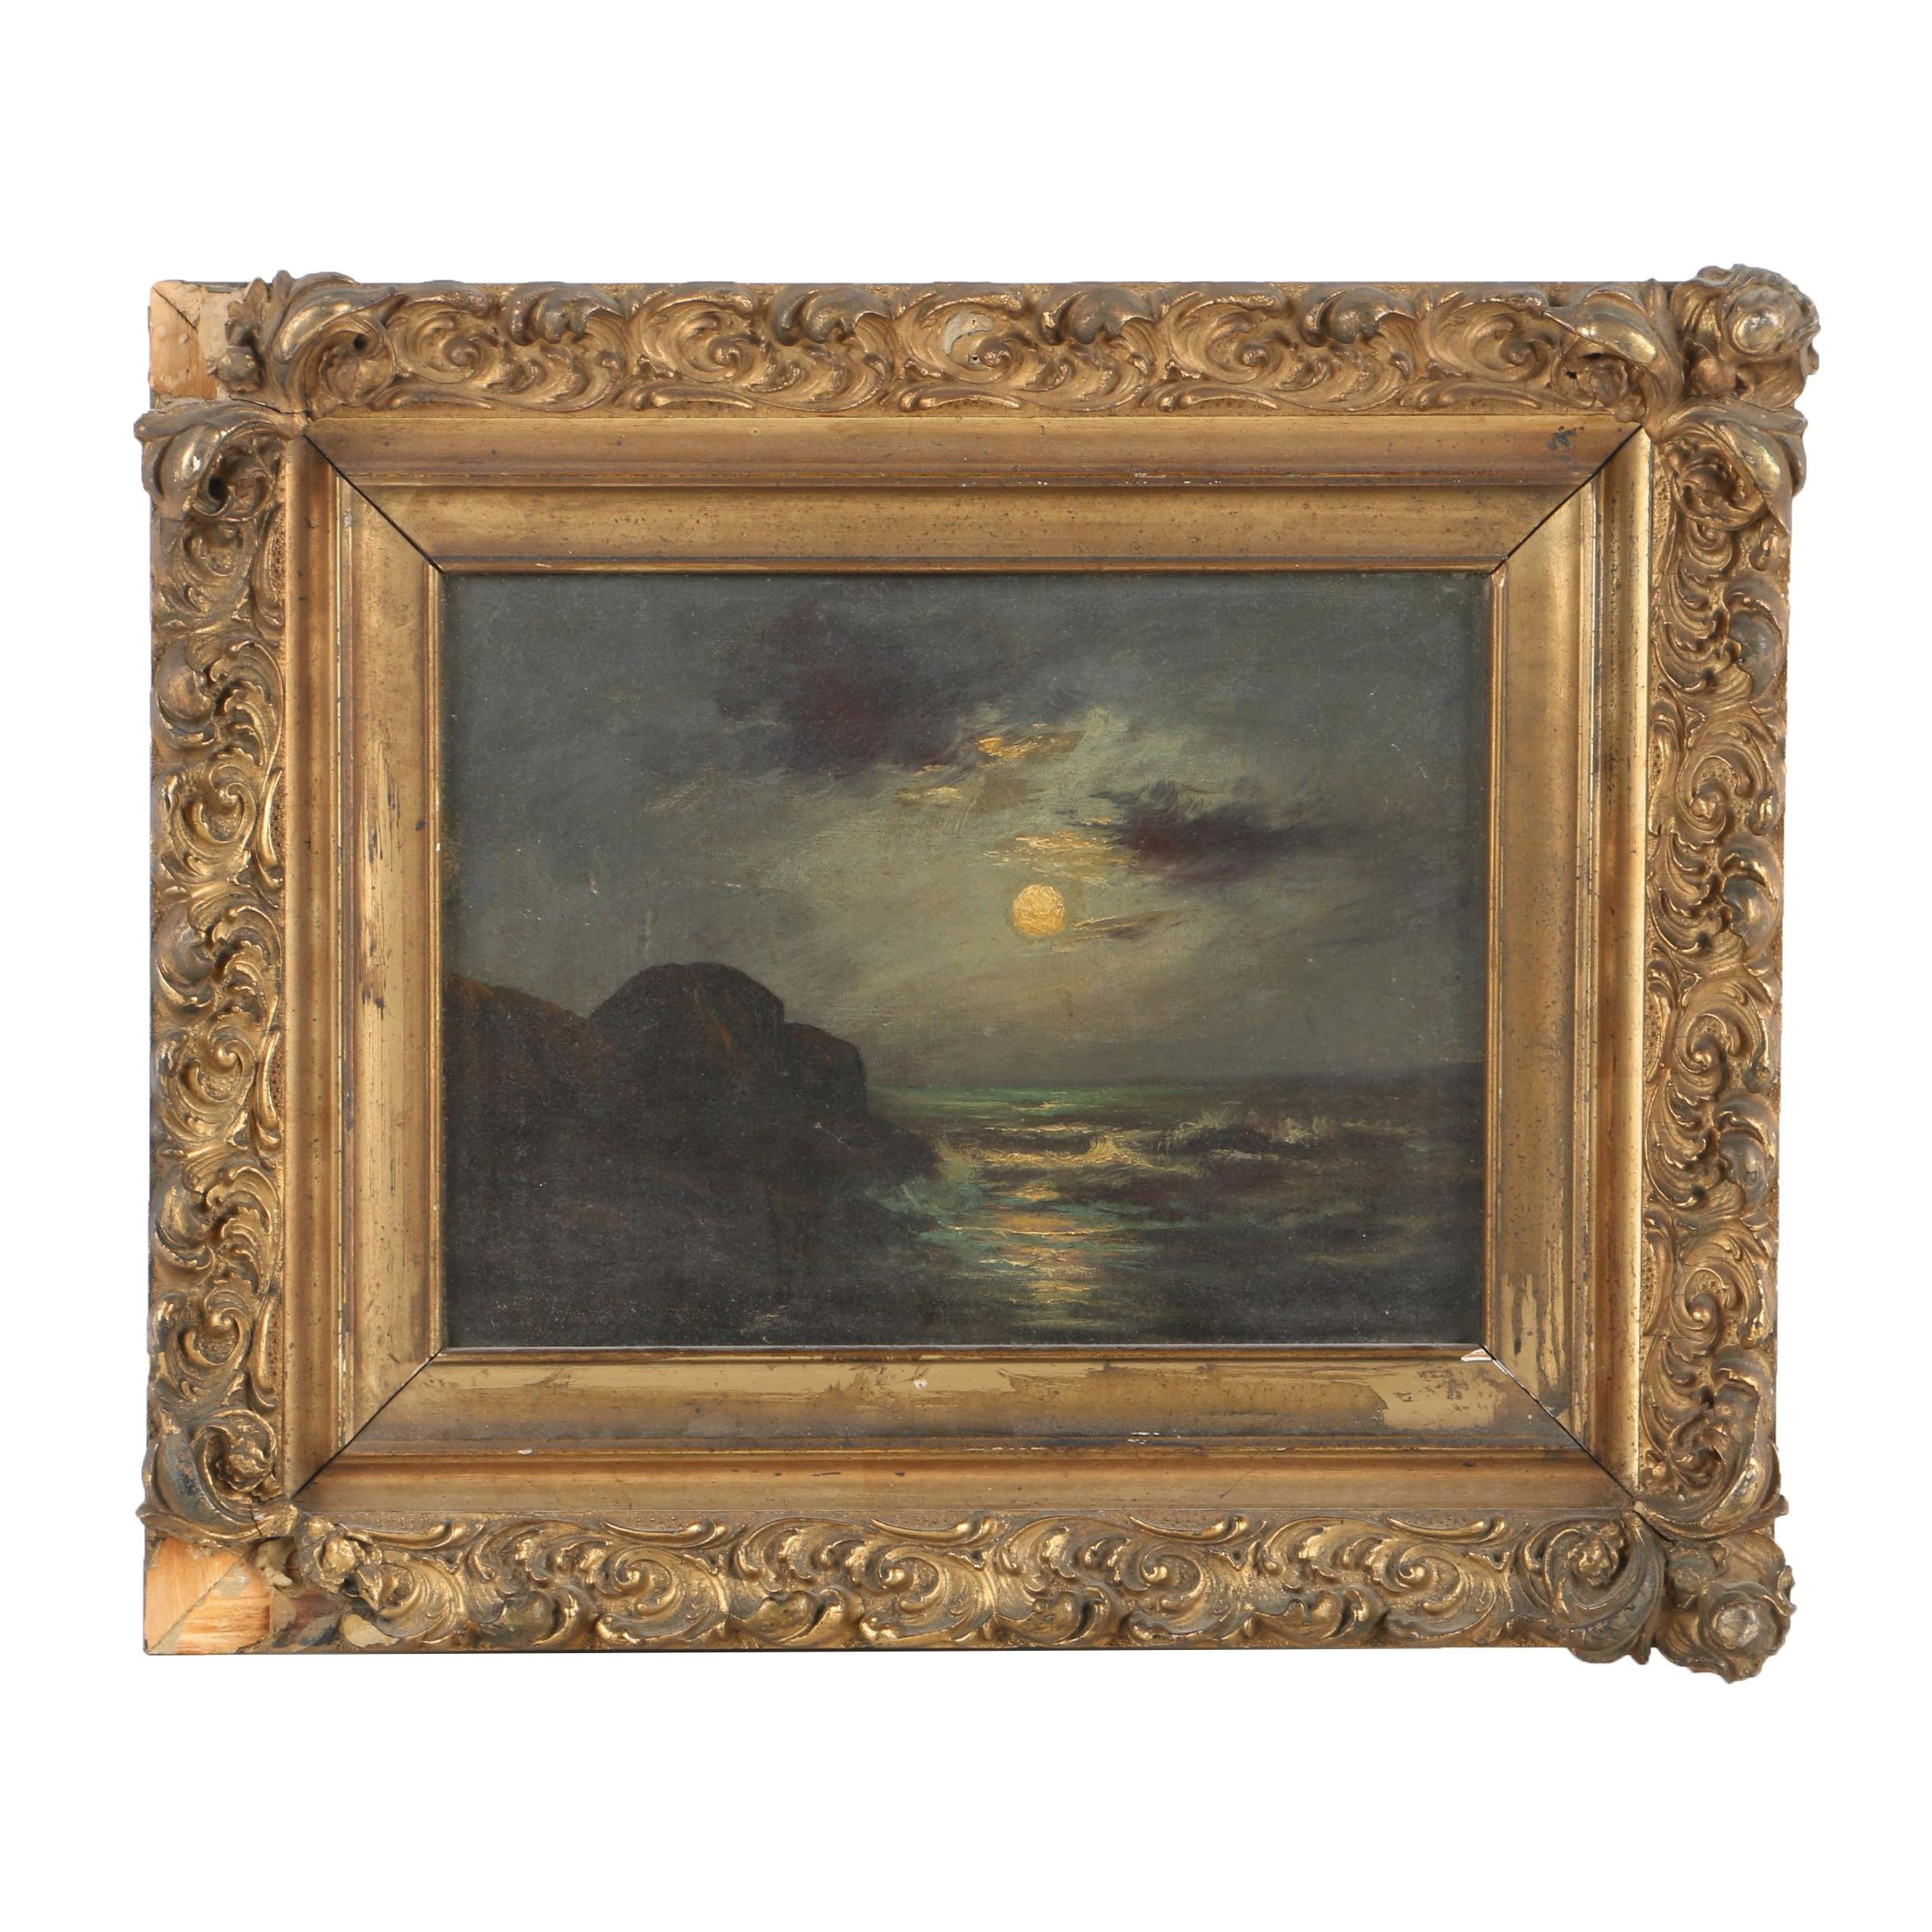 Antique Nocturne Seascape Oil Painting on Canvas